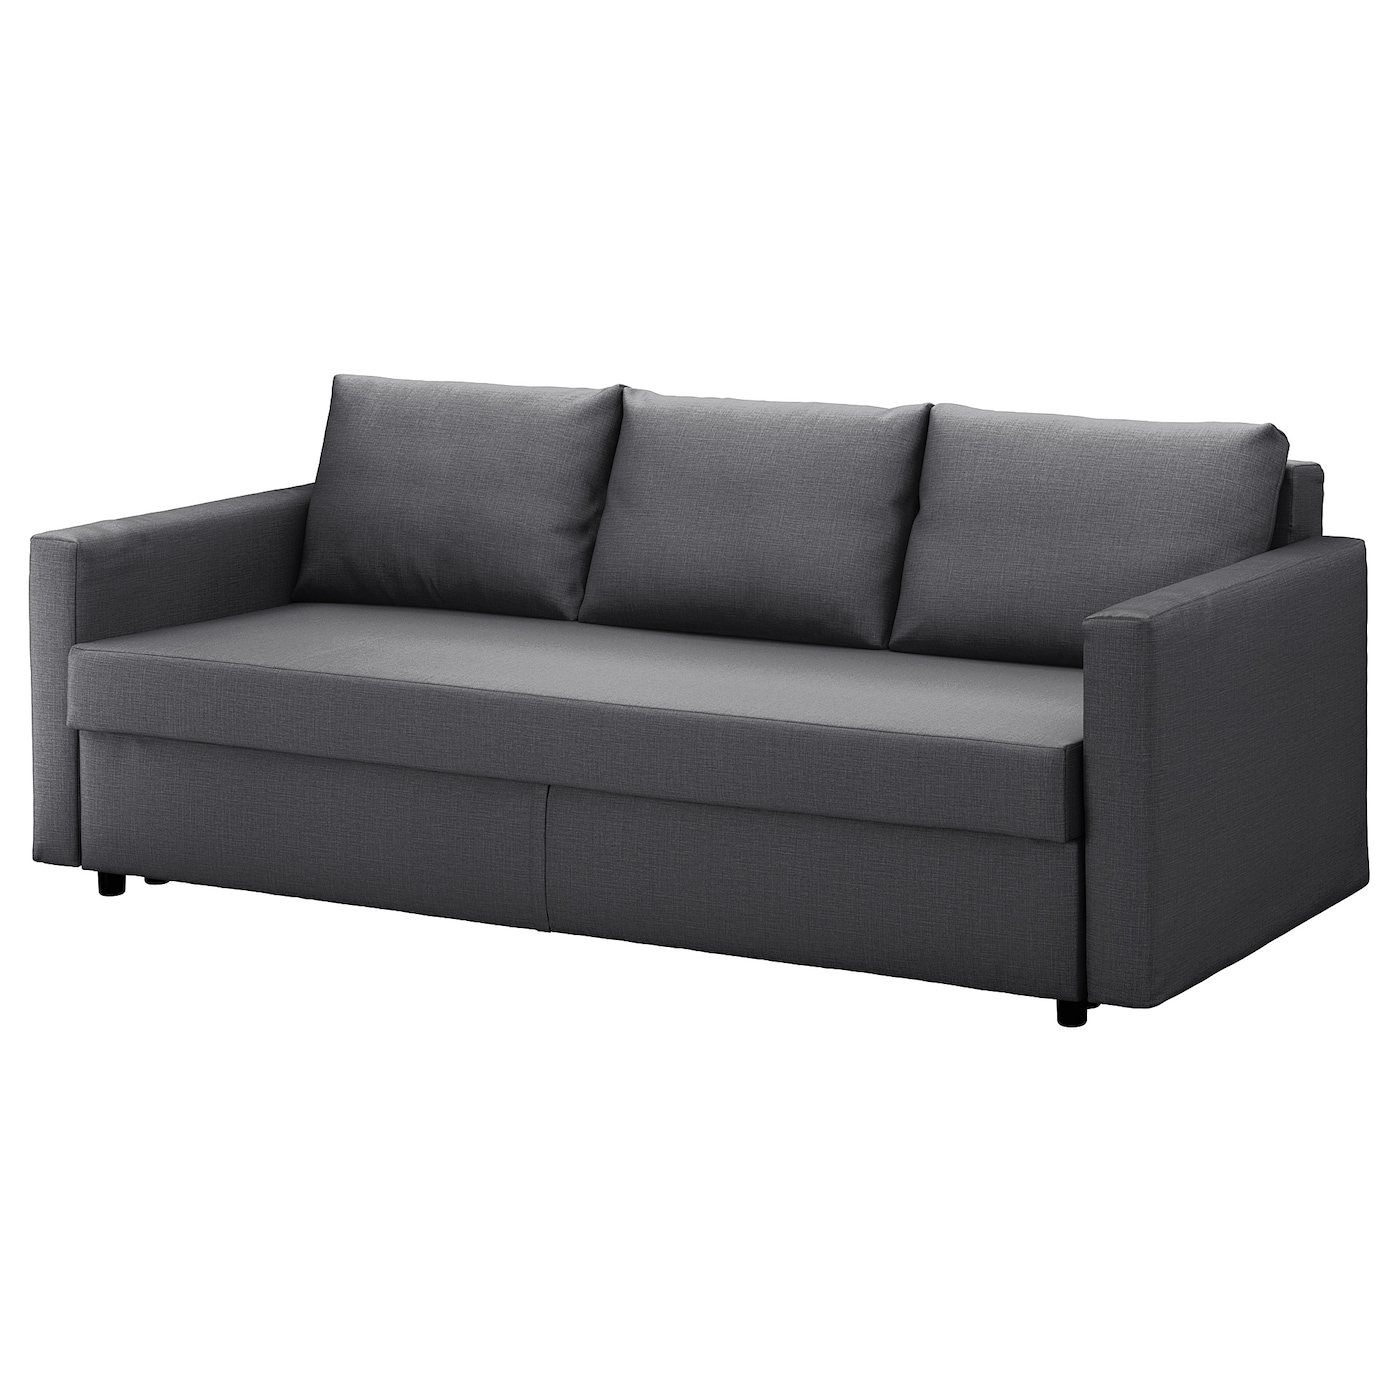 Awesome IKEA FRIHETEN Three Seat Sofa Bed Readily Converts Into A Bed.